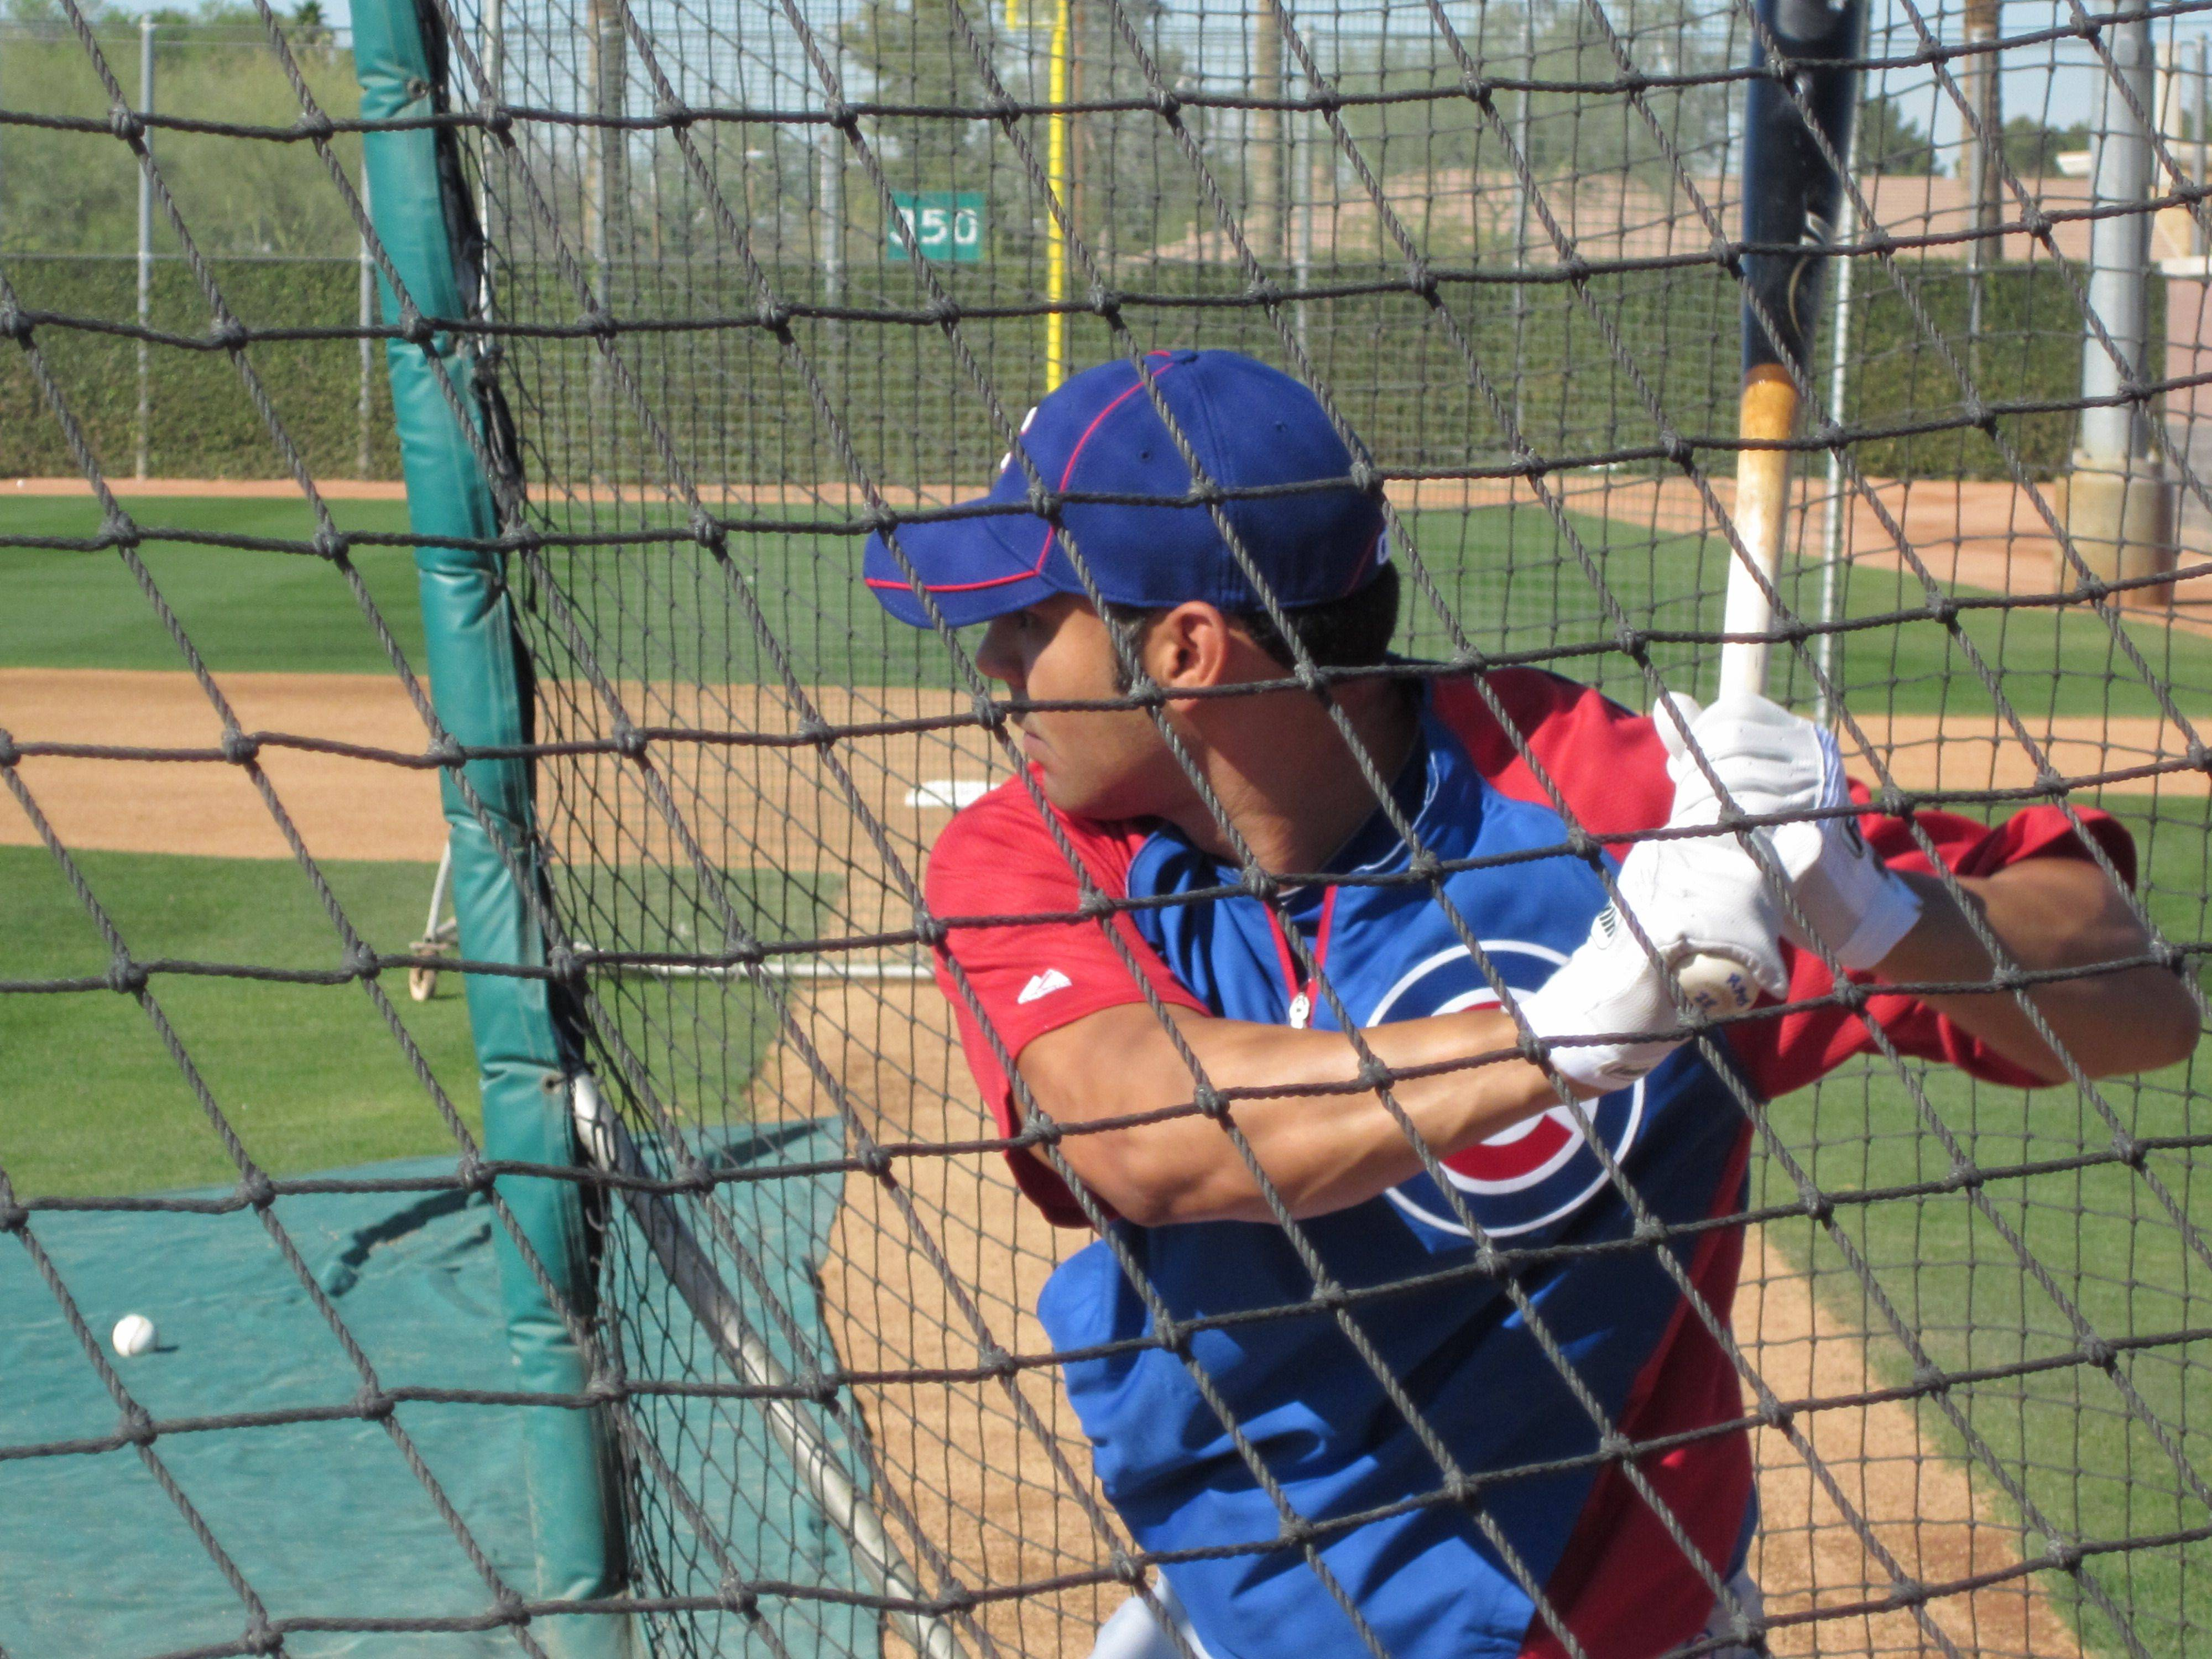 Cubs third baseman Scott Moore, a nonroster player, gets in some work Thursday at Cubs camp in Mesa, Ariz.